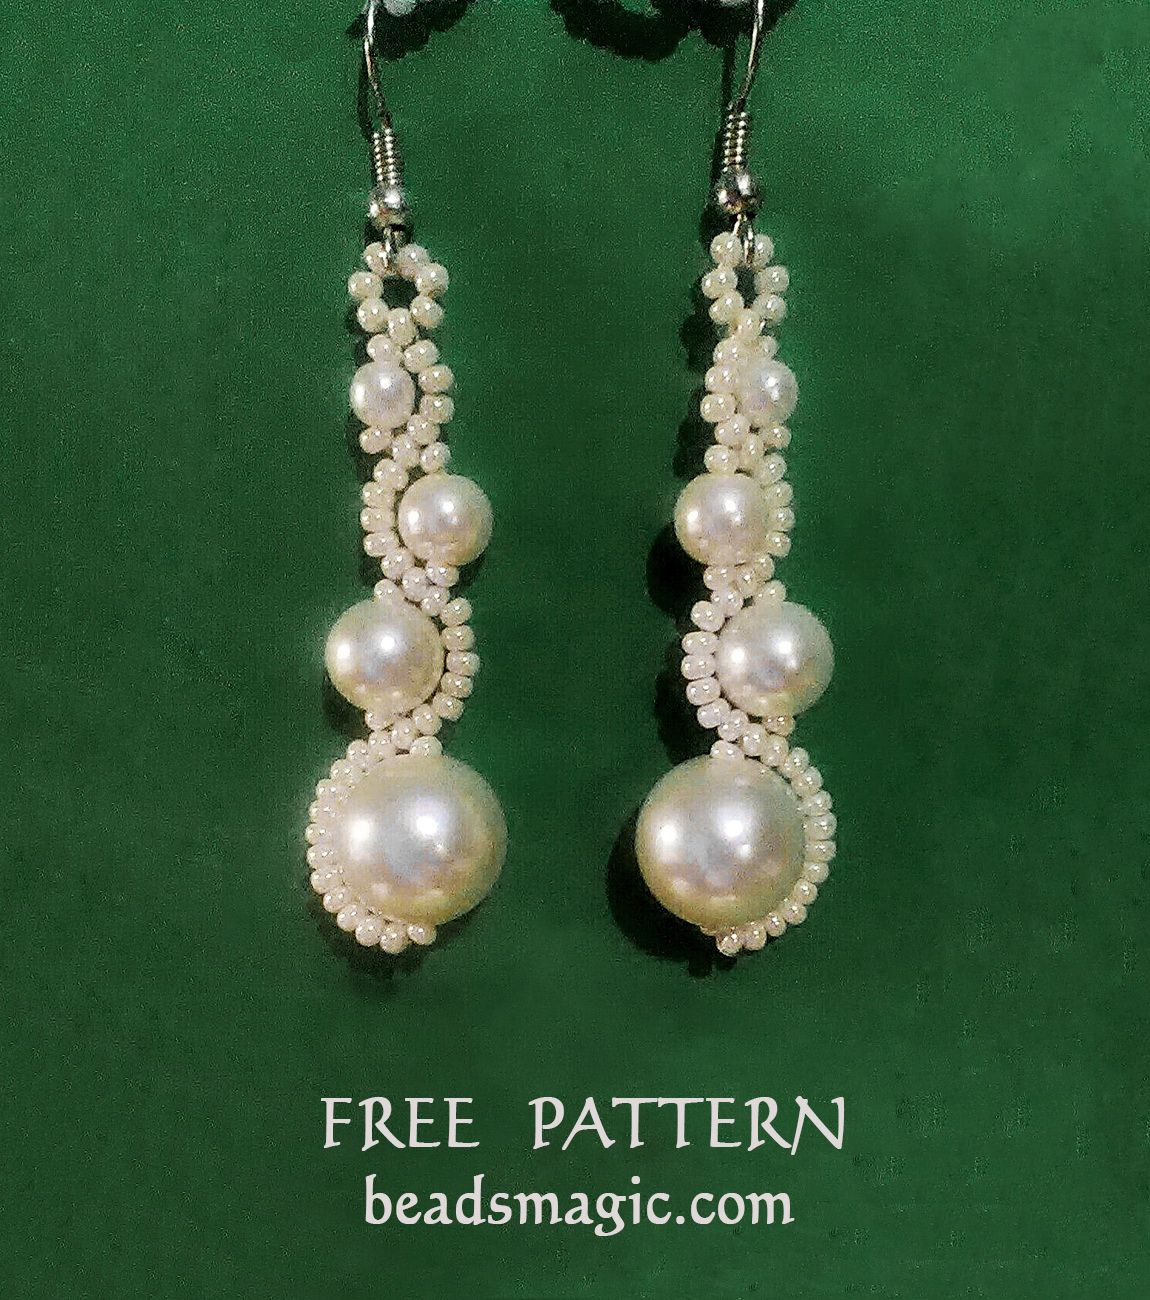 patterns pattern bead seed earrings beaded guide diy earring jewellery